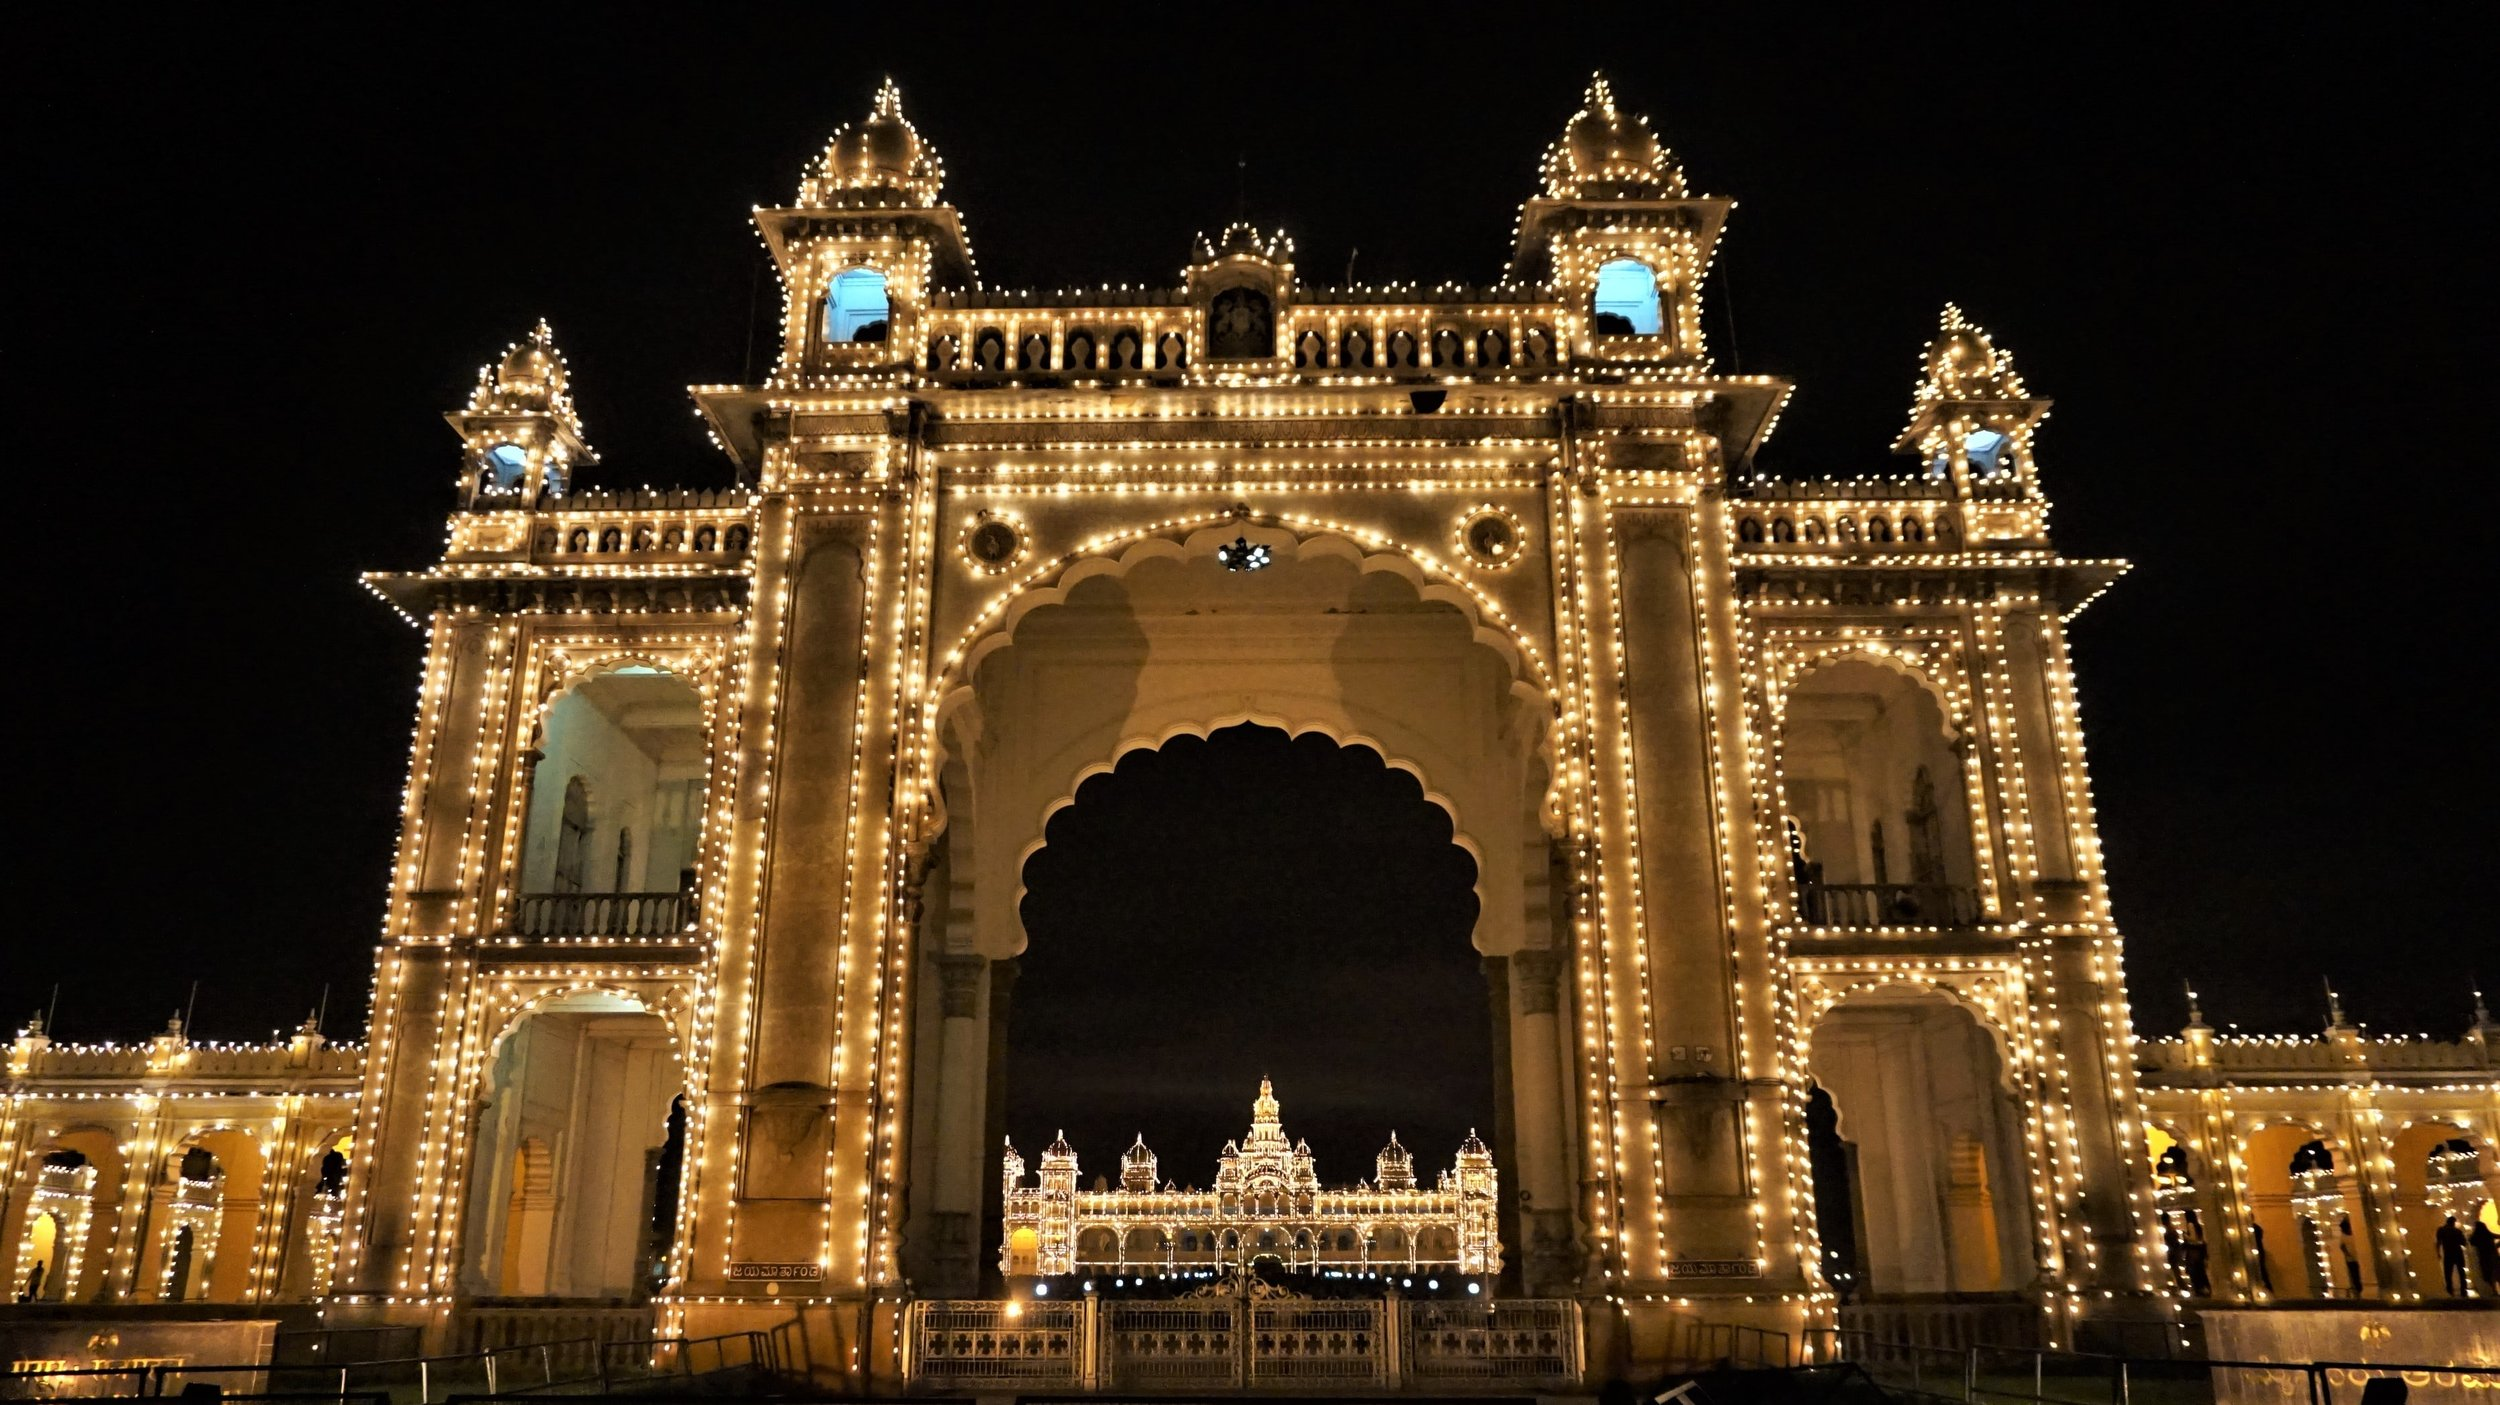 Mysore Palace at night is one of the best things to do in Mysore, Karnataka